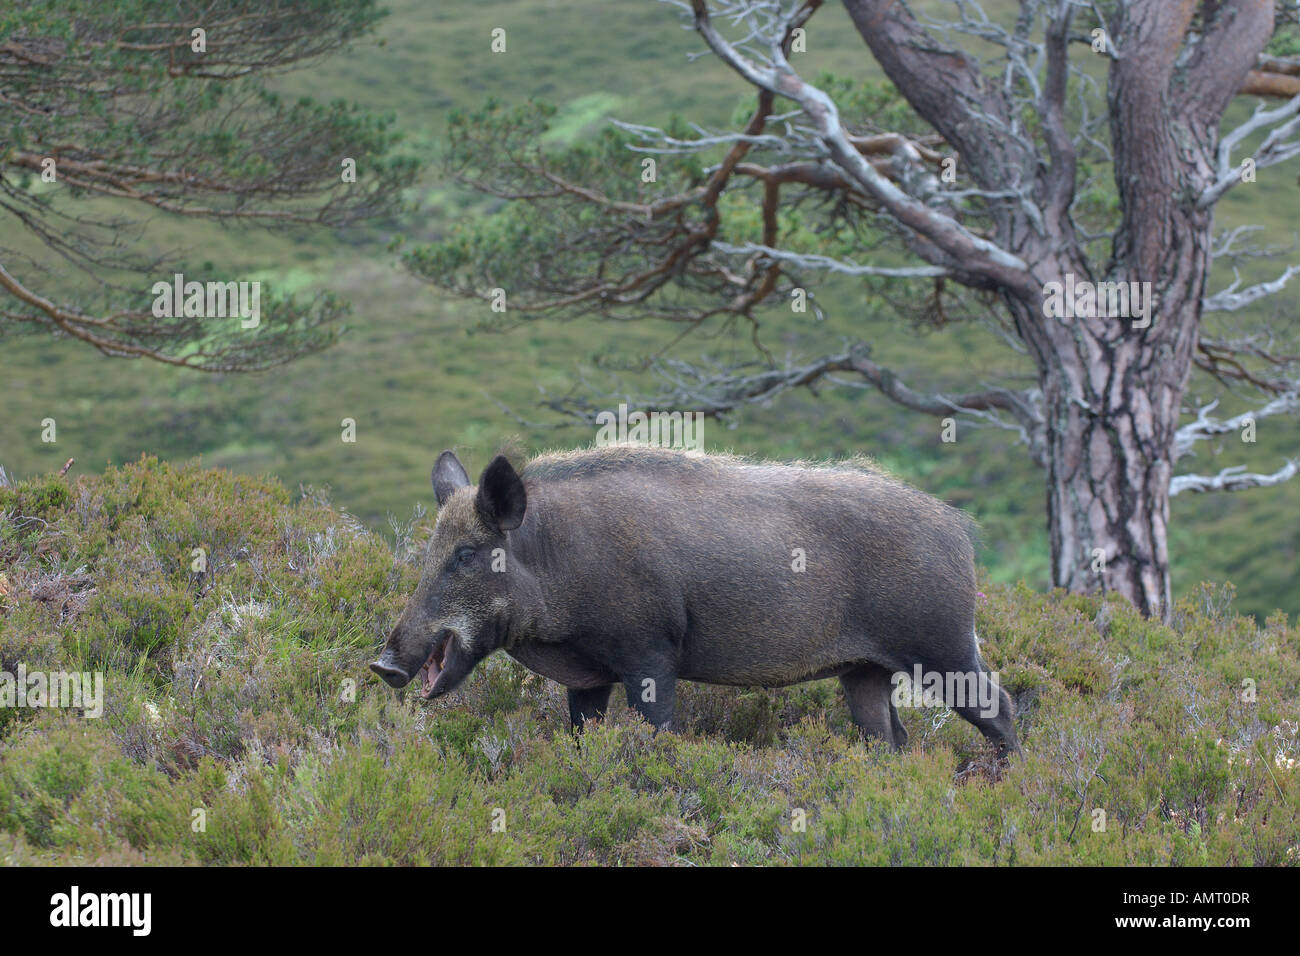 Wild boar Sus scrofa adult female or sow Reintroduction project at Alladale estate Sutherland Scotland July 2007 - Stock Image